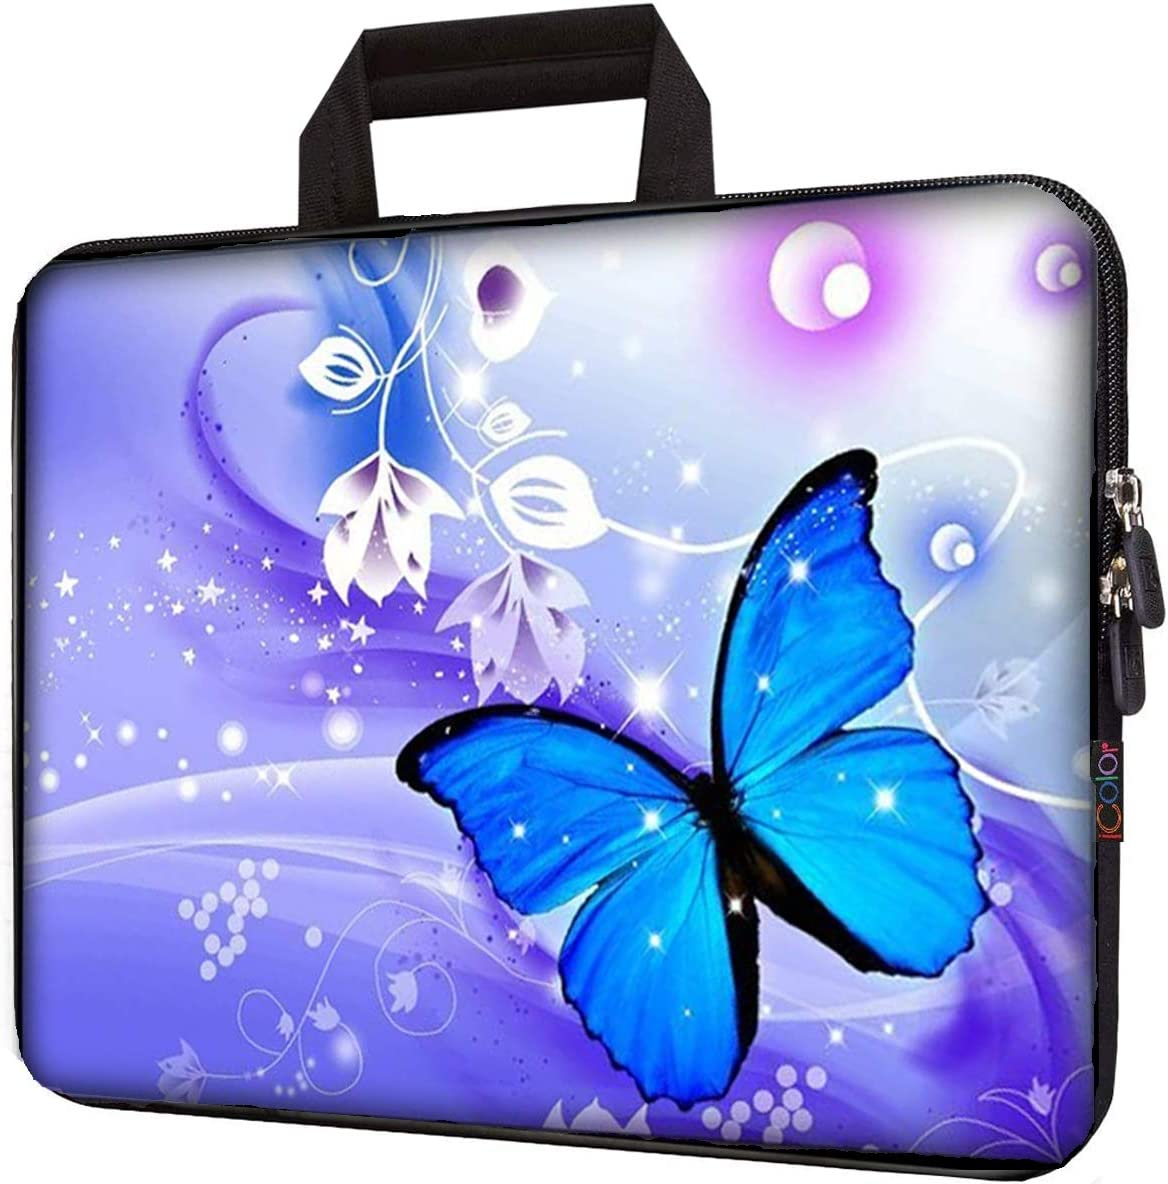 City in The Winter Train Laptop Sleeve Bag Water-Resistant Protective Case Bag Compatible with Any Notebook AM024706 13 inch//13.3 inch C COABALLA Laptop Bag Nursery Activity